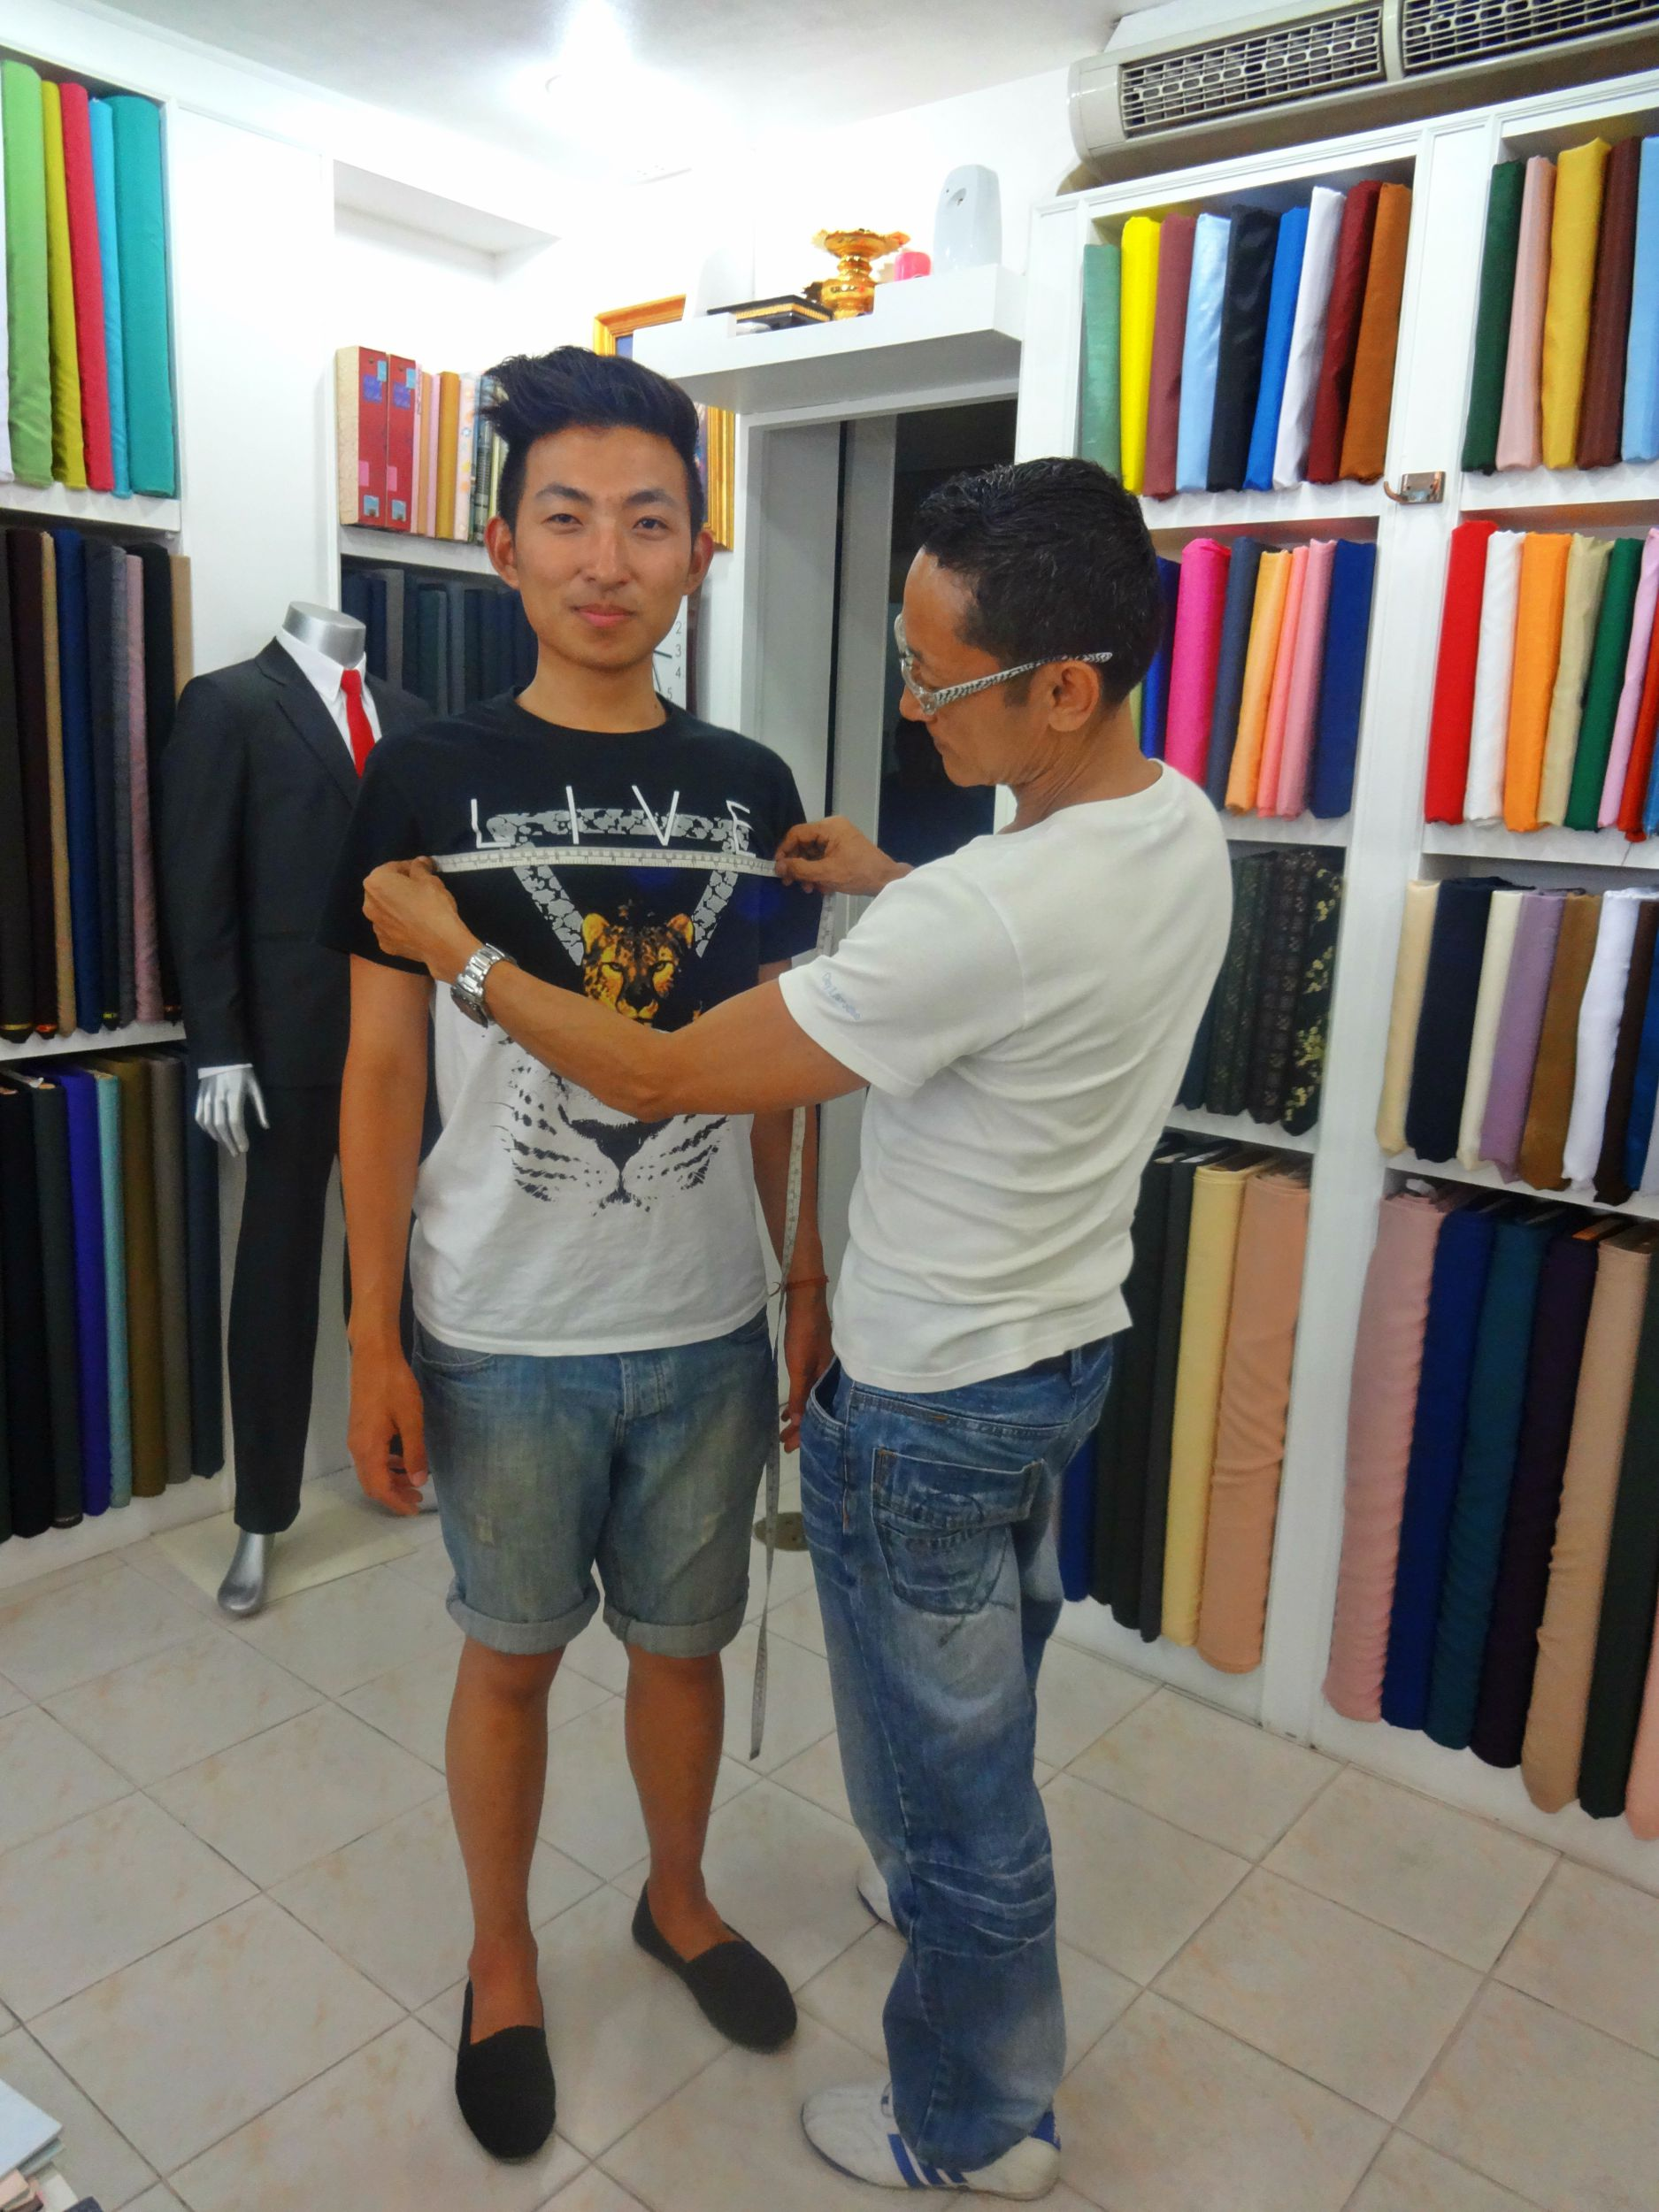 Aug 18: Of course no trip to  the South East is complete without getting a custom tailored suit. Getting measured at BEST Suits, owned by Mr Rai in Phuket Town. They're wonderful.